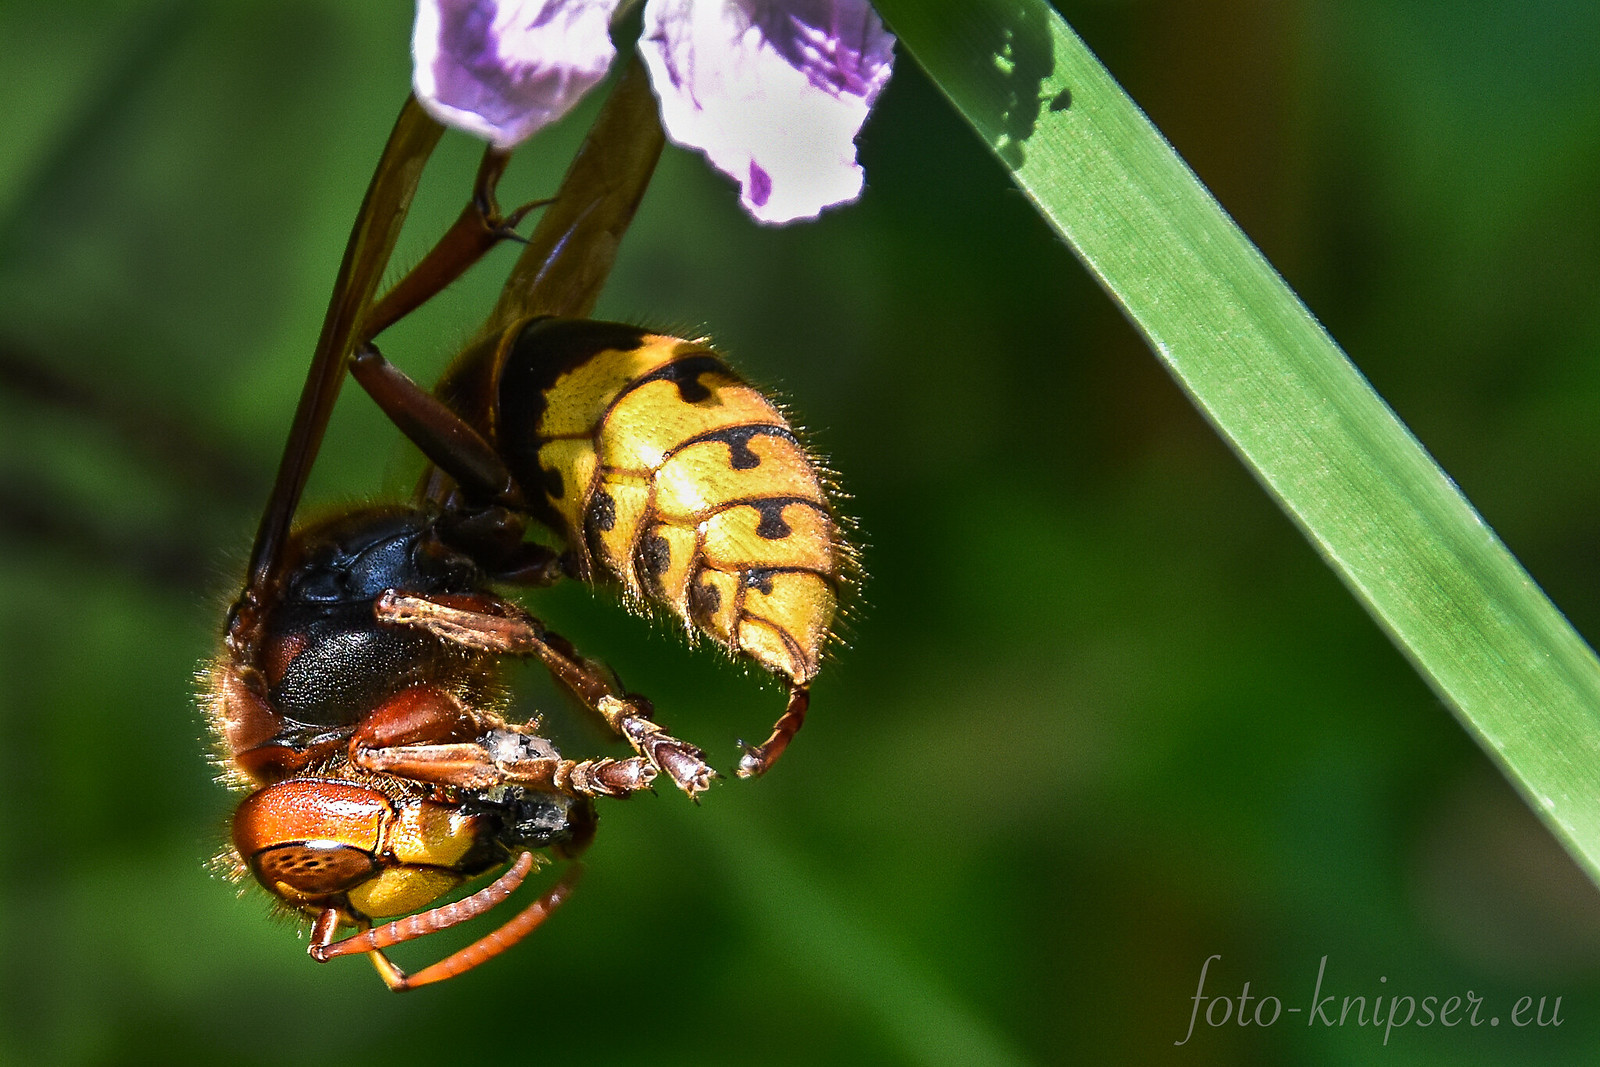 Hornet eating a fly